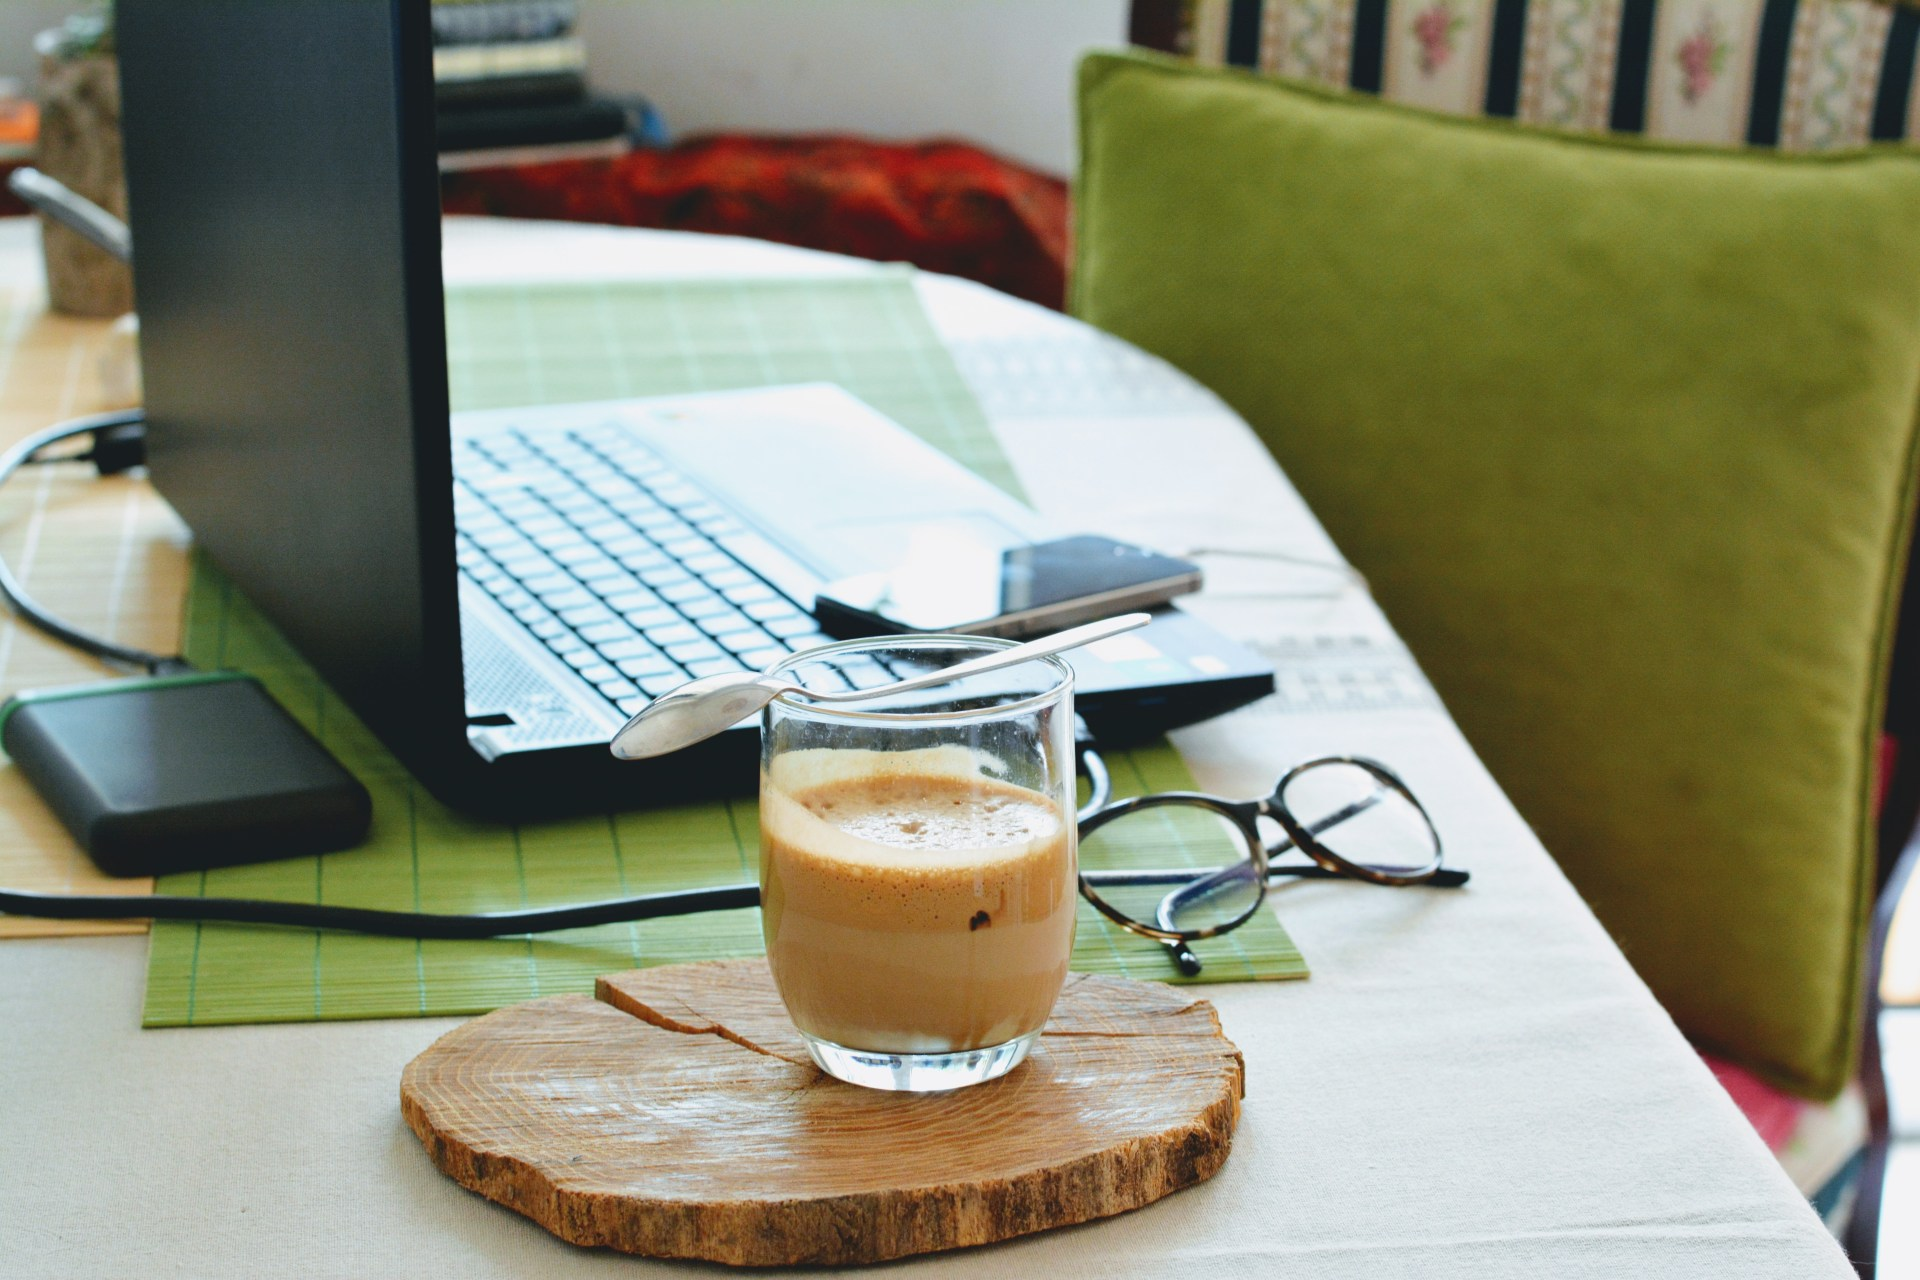 6 tips to better remote working for developers